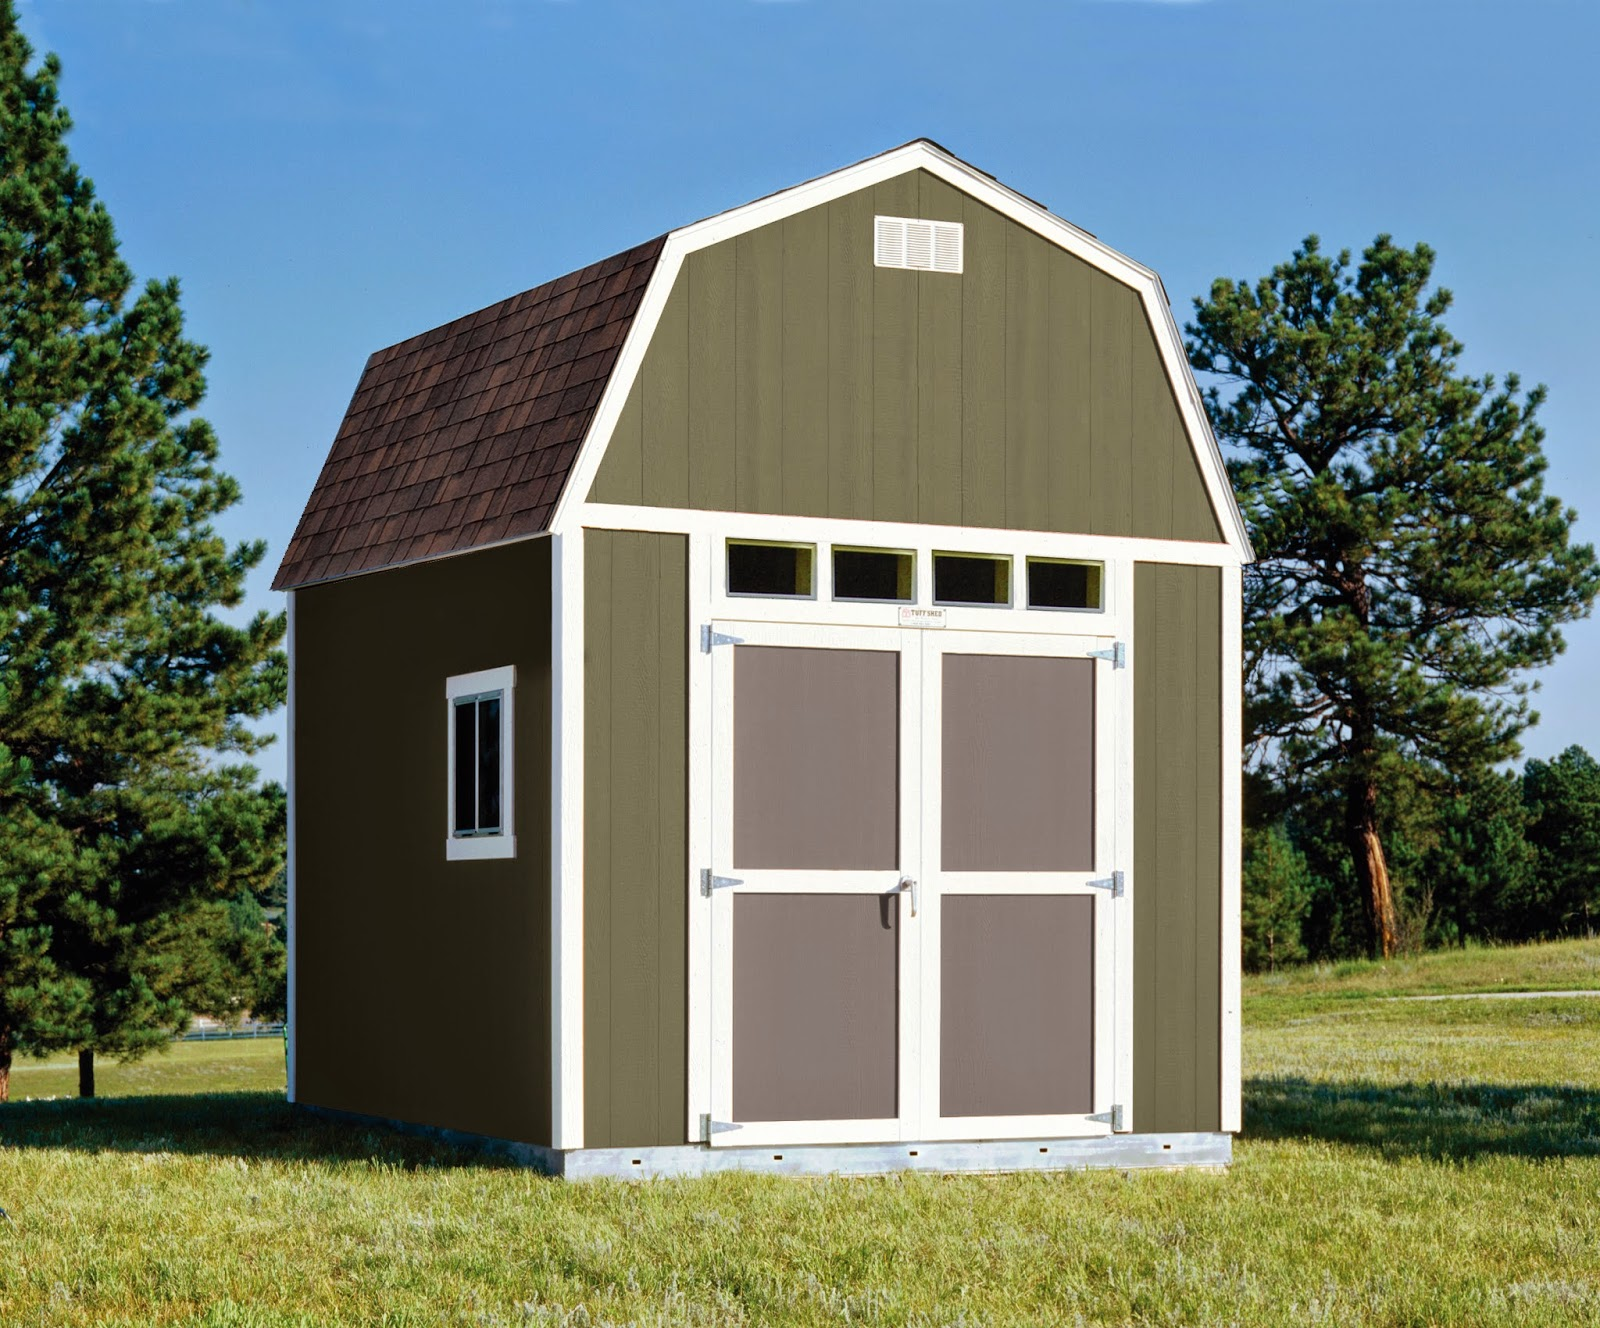 one of the easiest ways to customize your tuff shed building is with our paint upgrade make your shed or garage stand out with bold color